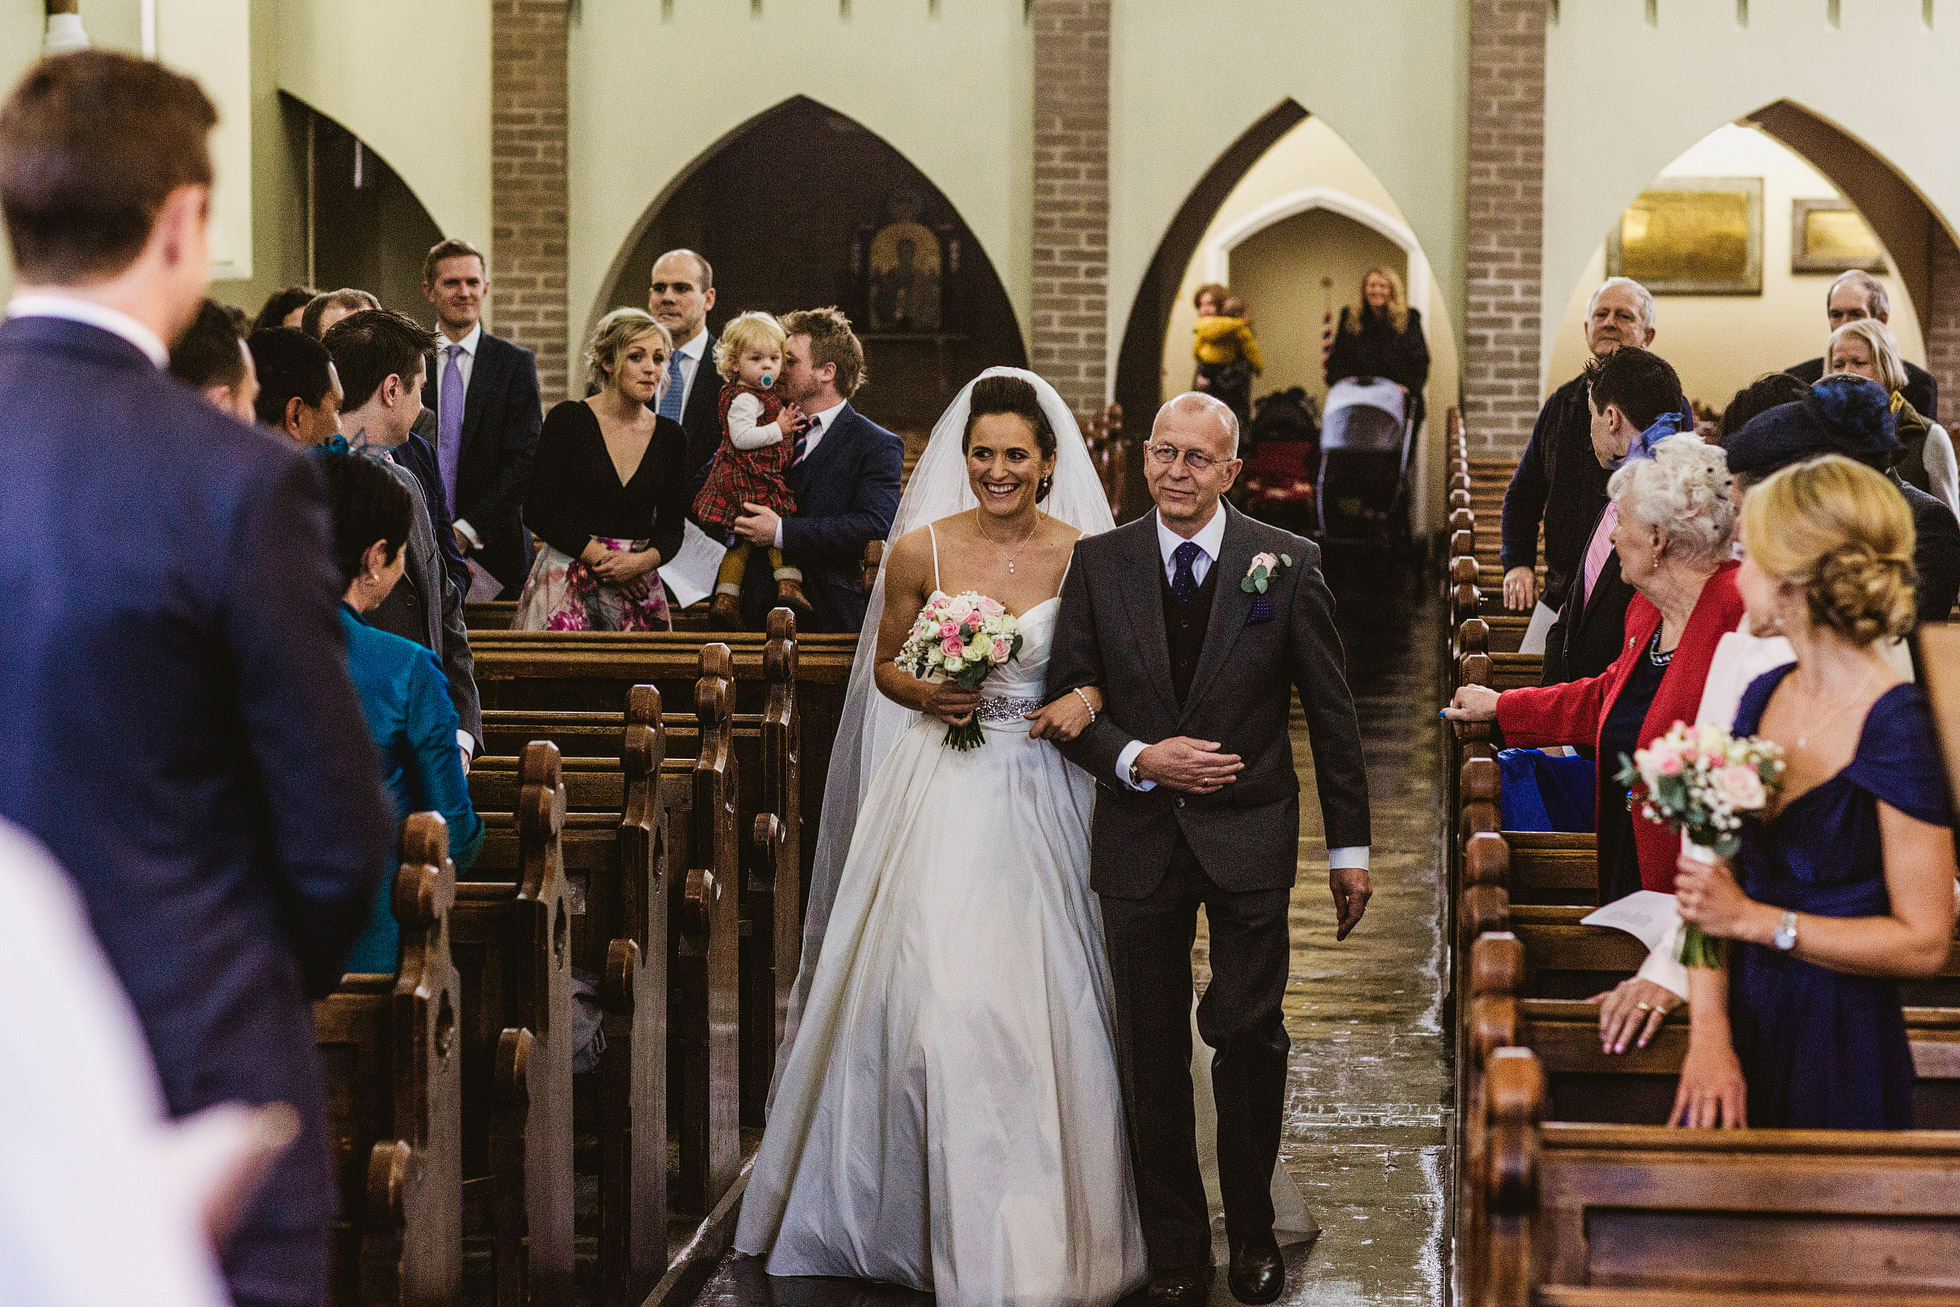 The Entrance of the Bride